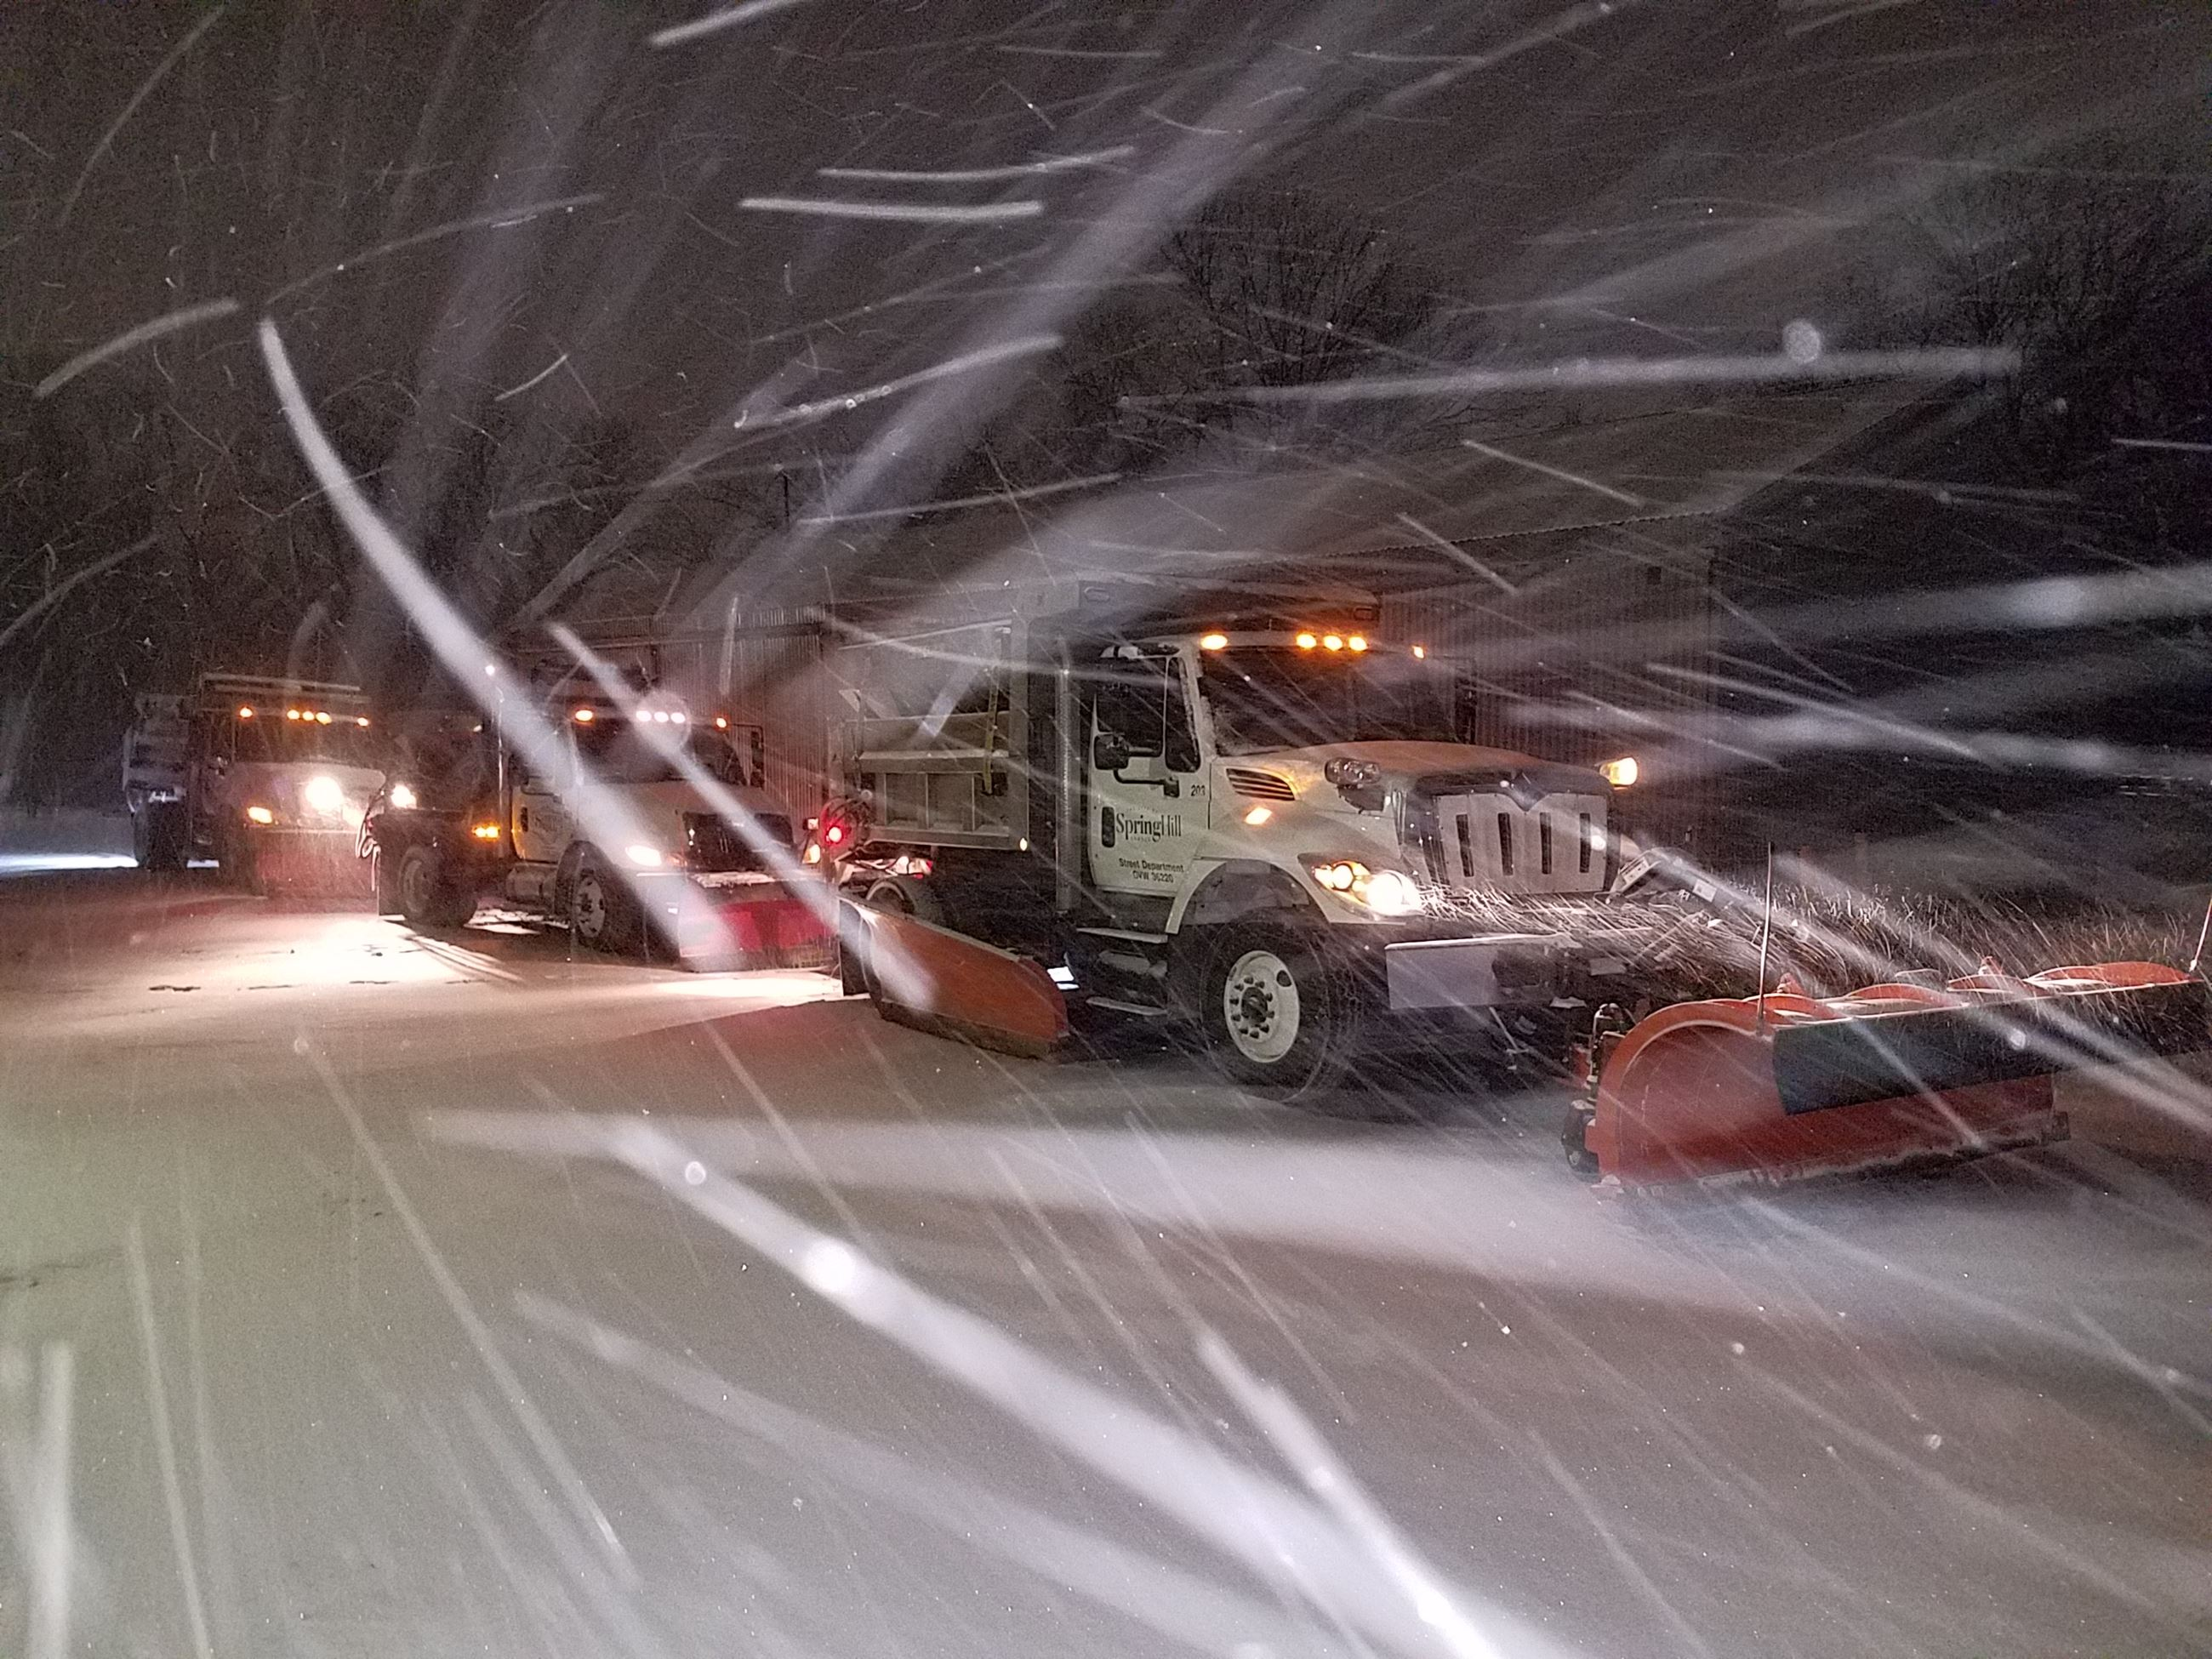 Snow plow trucks stacked up in snowy weather